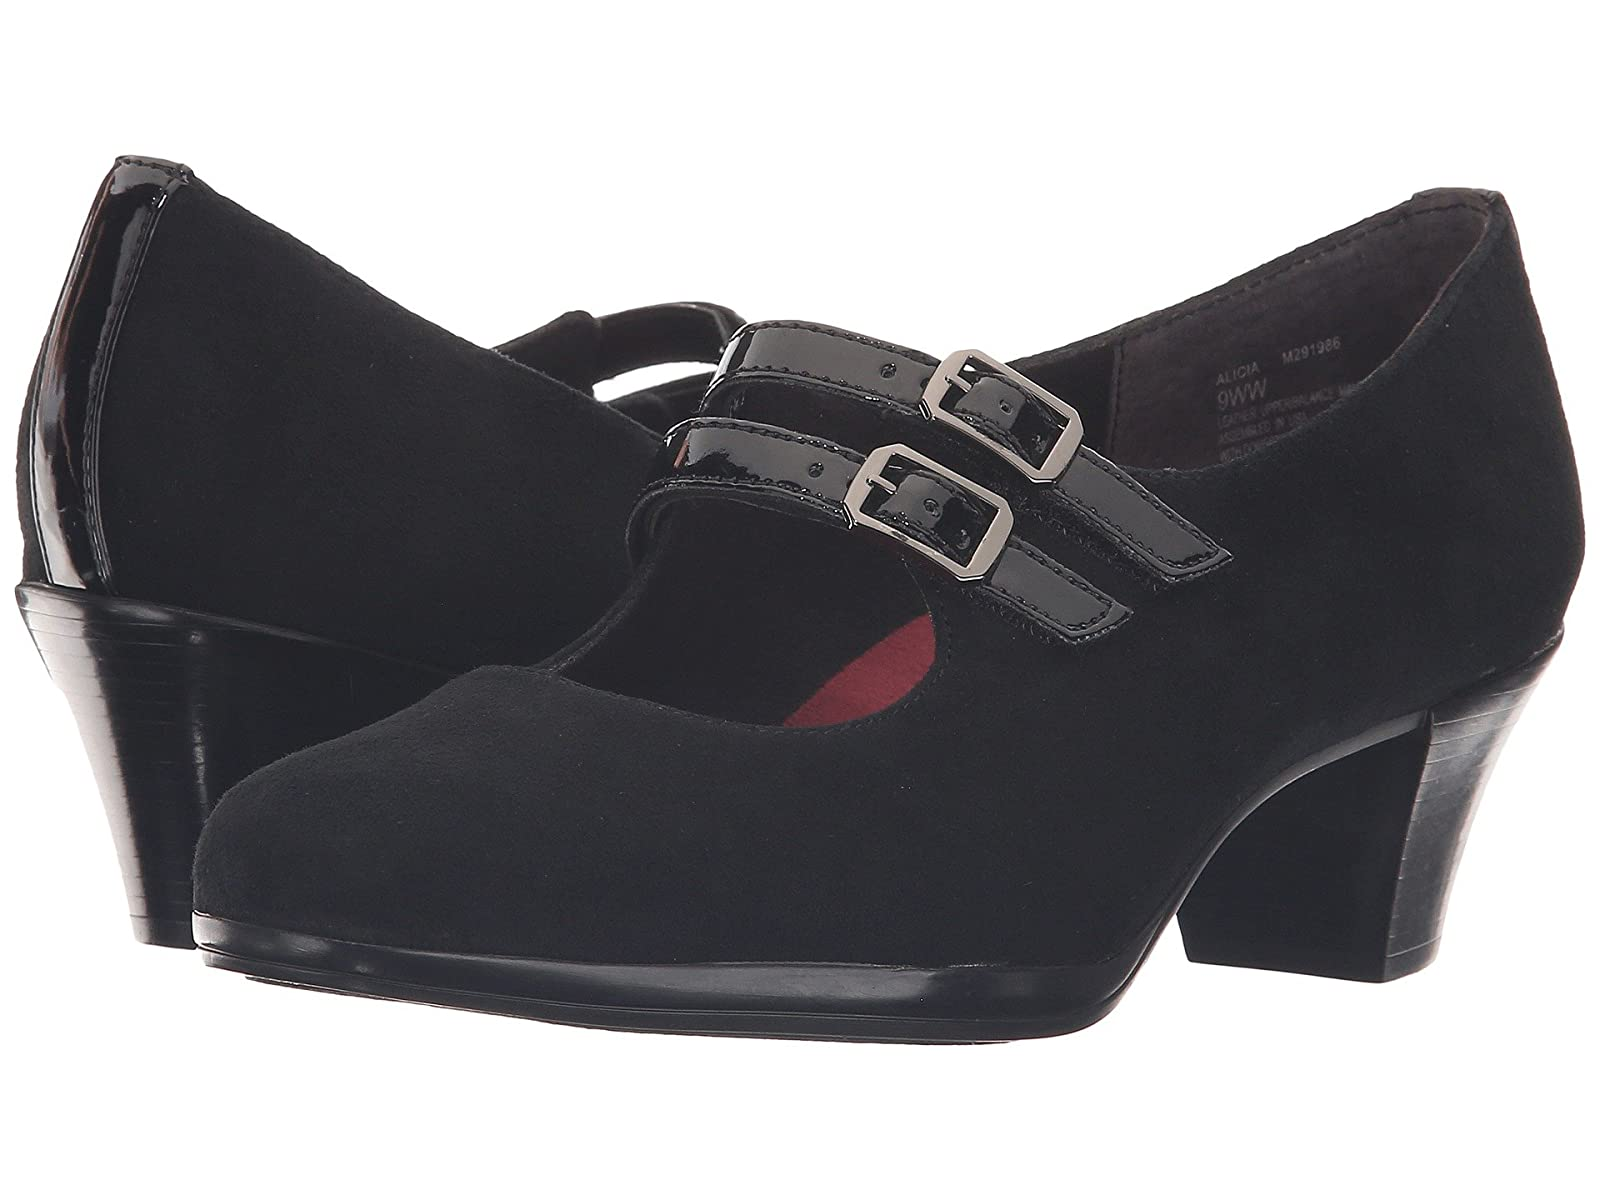 Munro AliciaCheap and distinctive eye-catching shoes